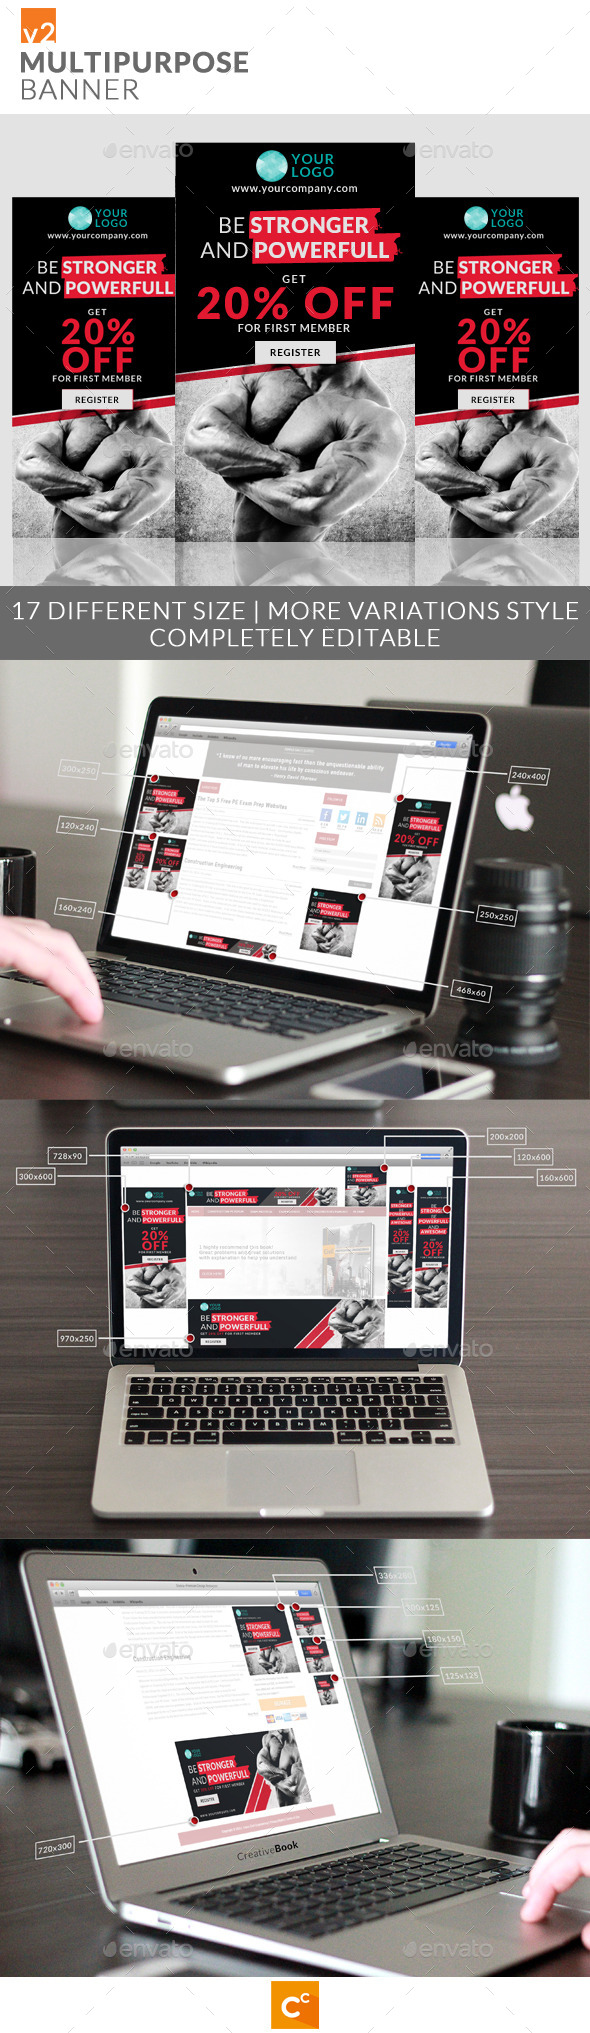 GraphicRiver Multipurpose Banner Ads v2 9453049